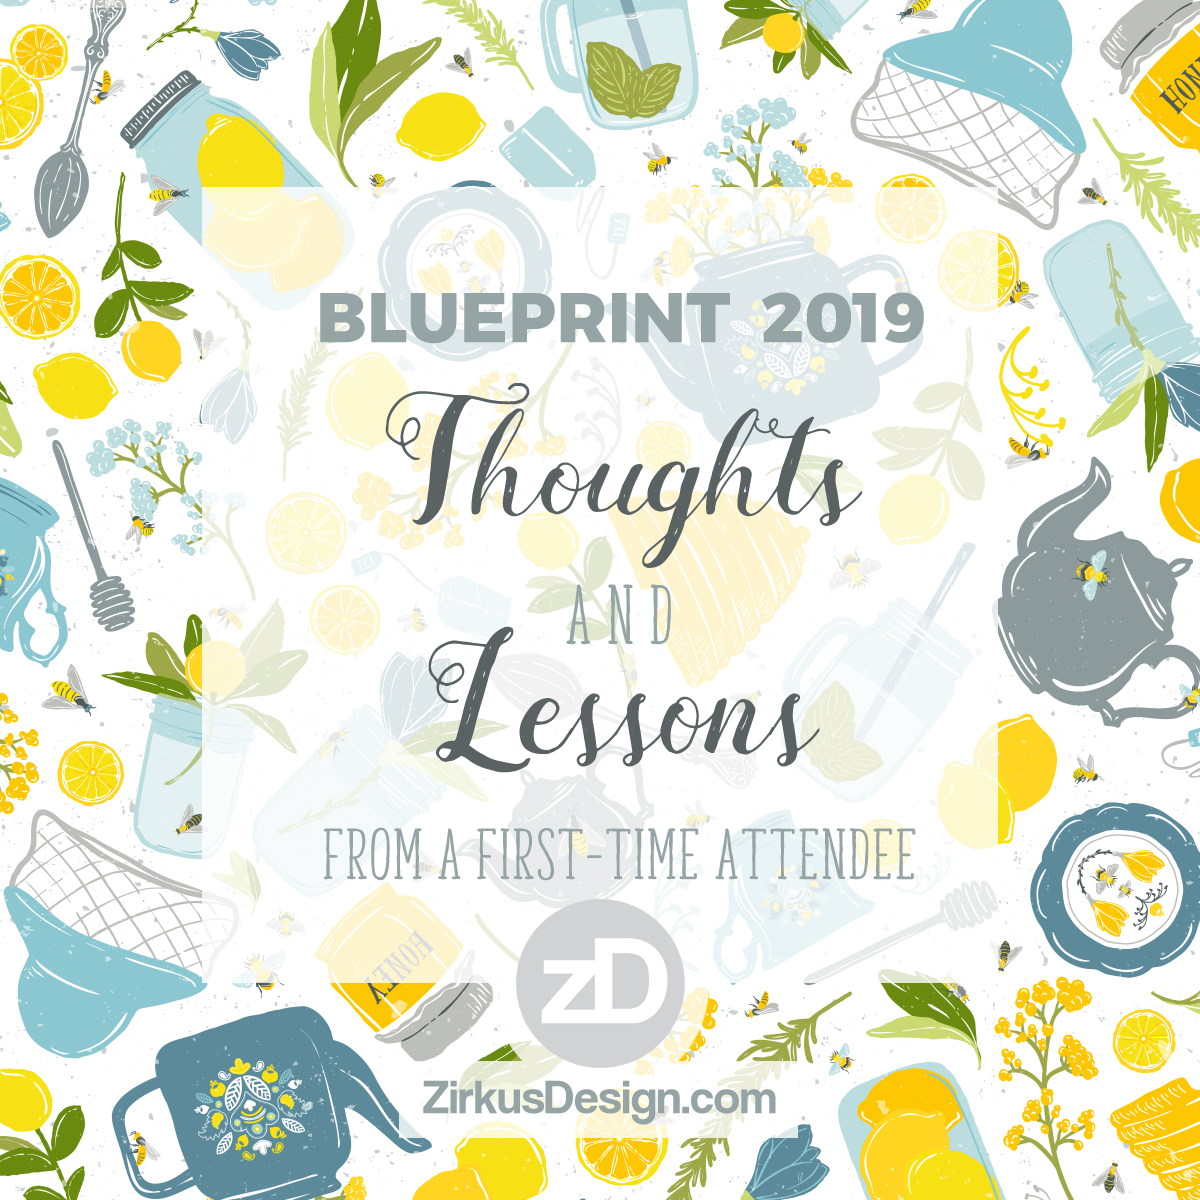 Zirkus Design // Blueprint NYC 2019 // Thoughts and Lessons from a First Time Attendee